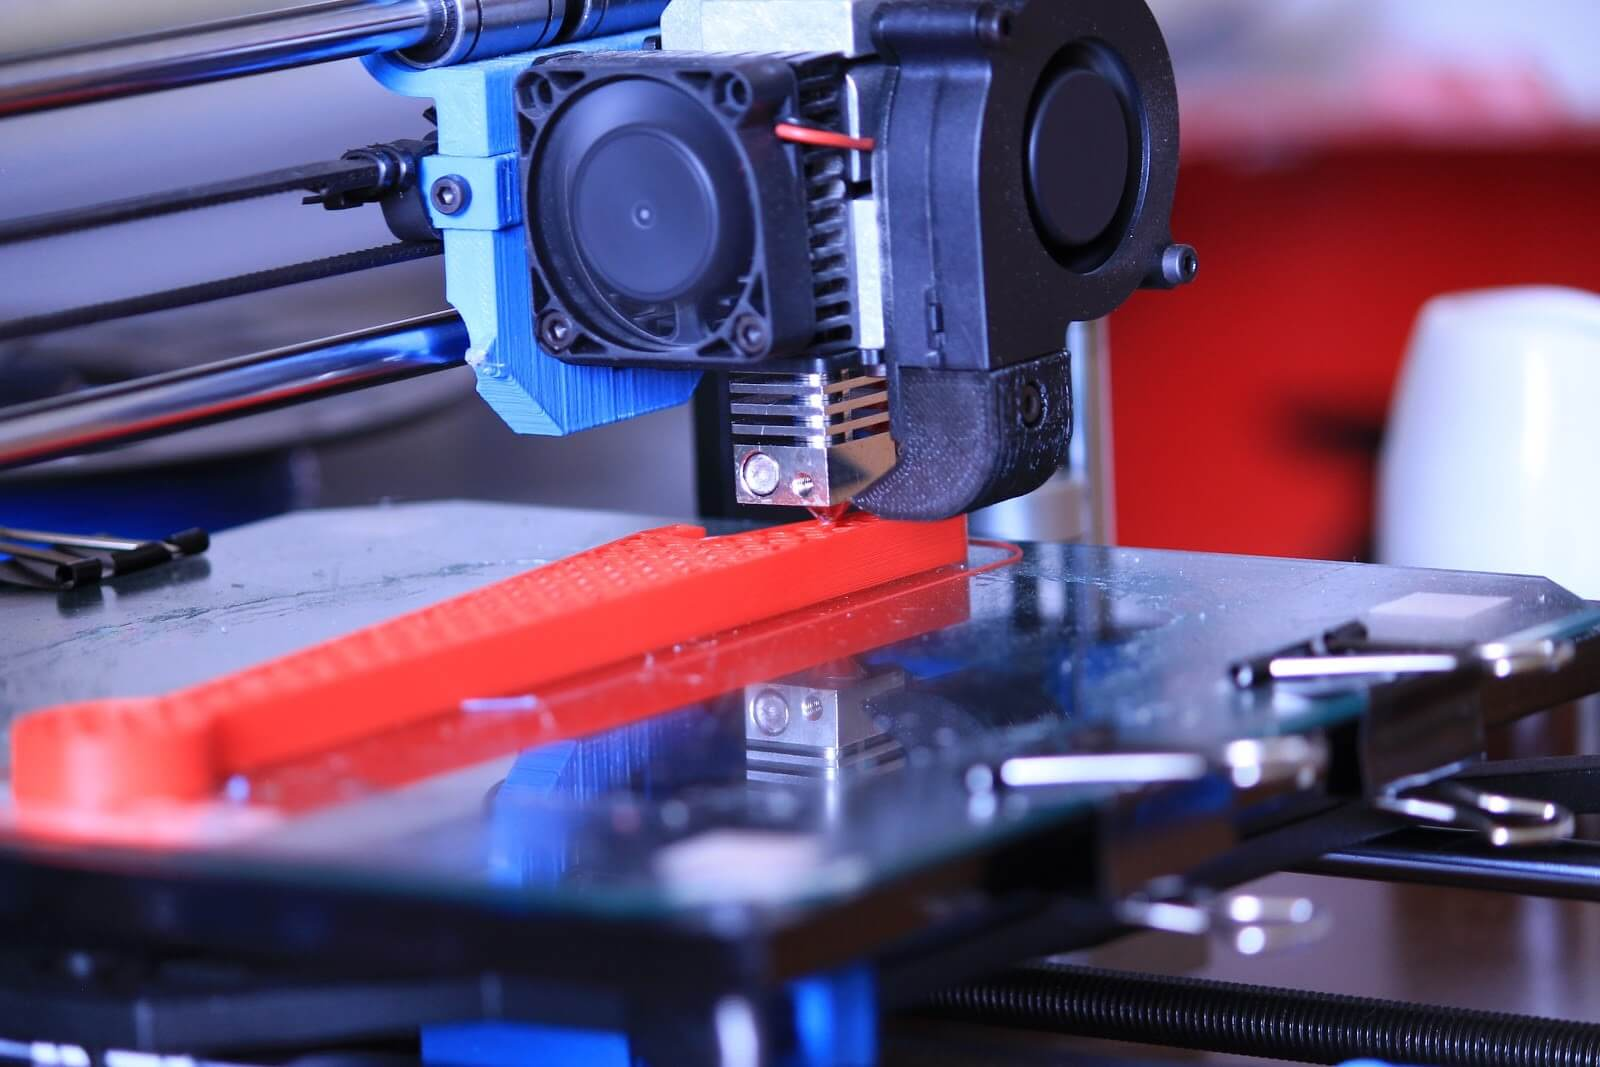 ABS Plastic Material for 3D Printing: FDM Thermoplastic Material